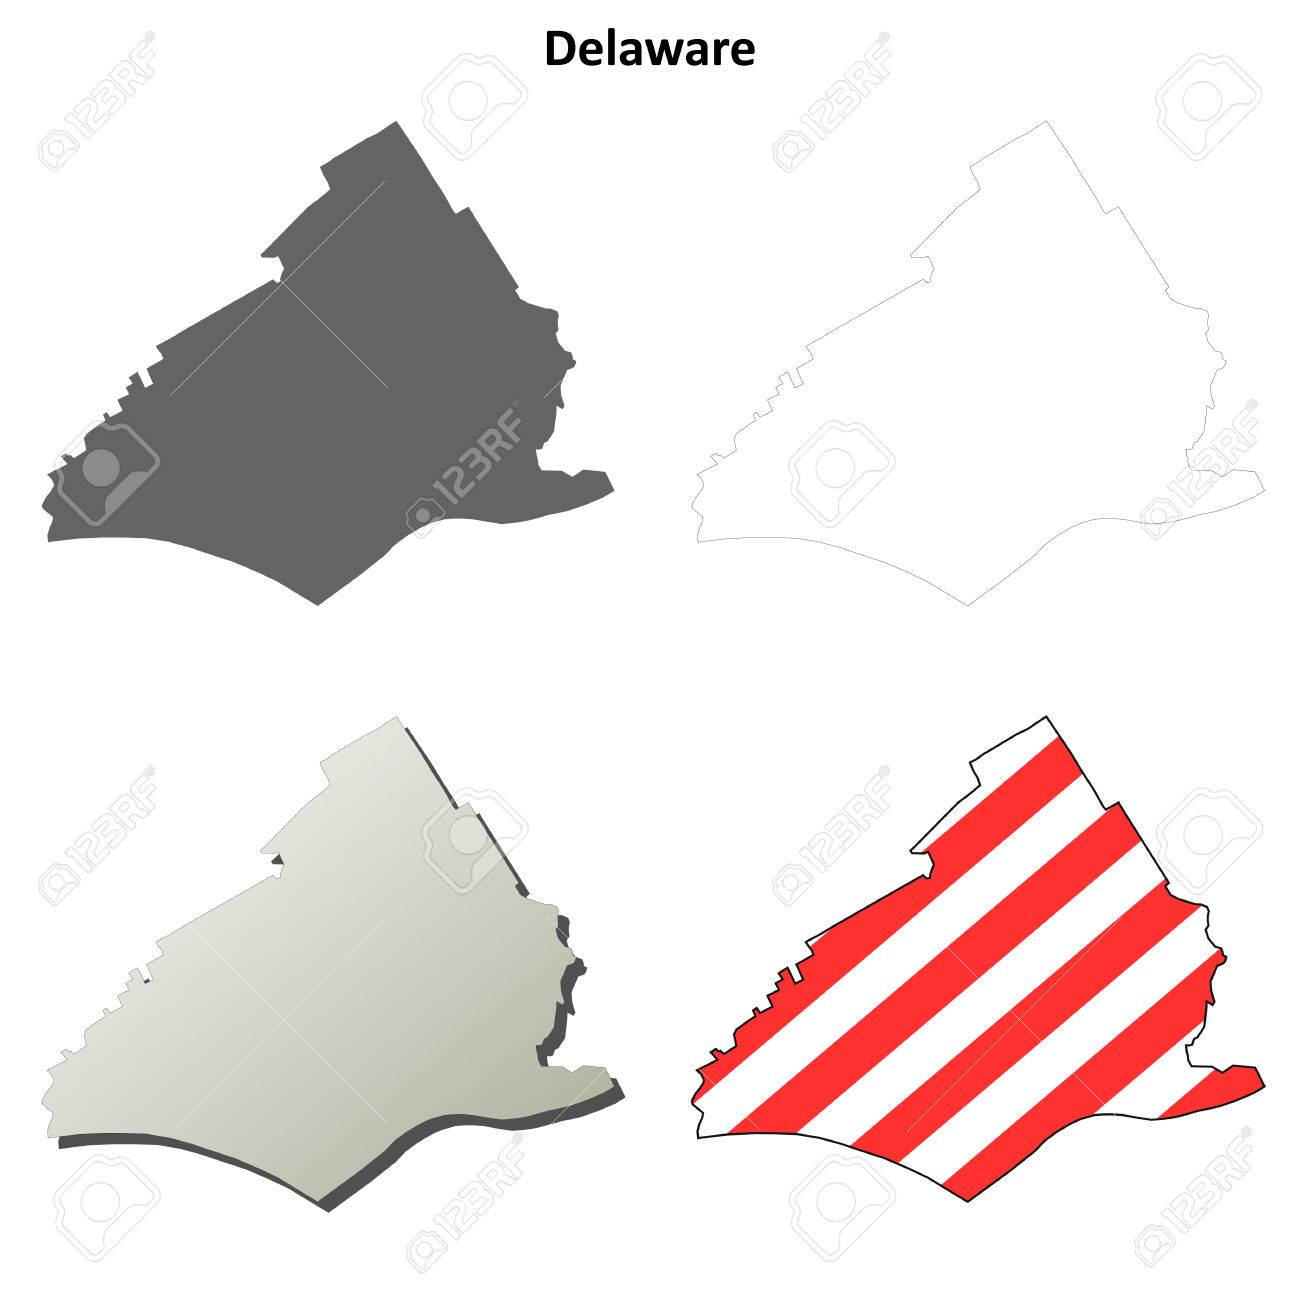 Delaware County Map on